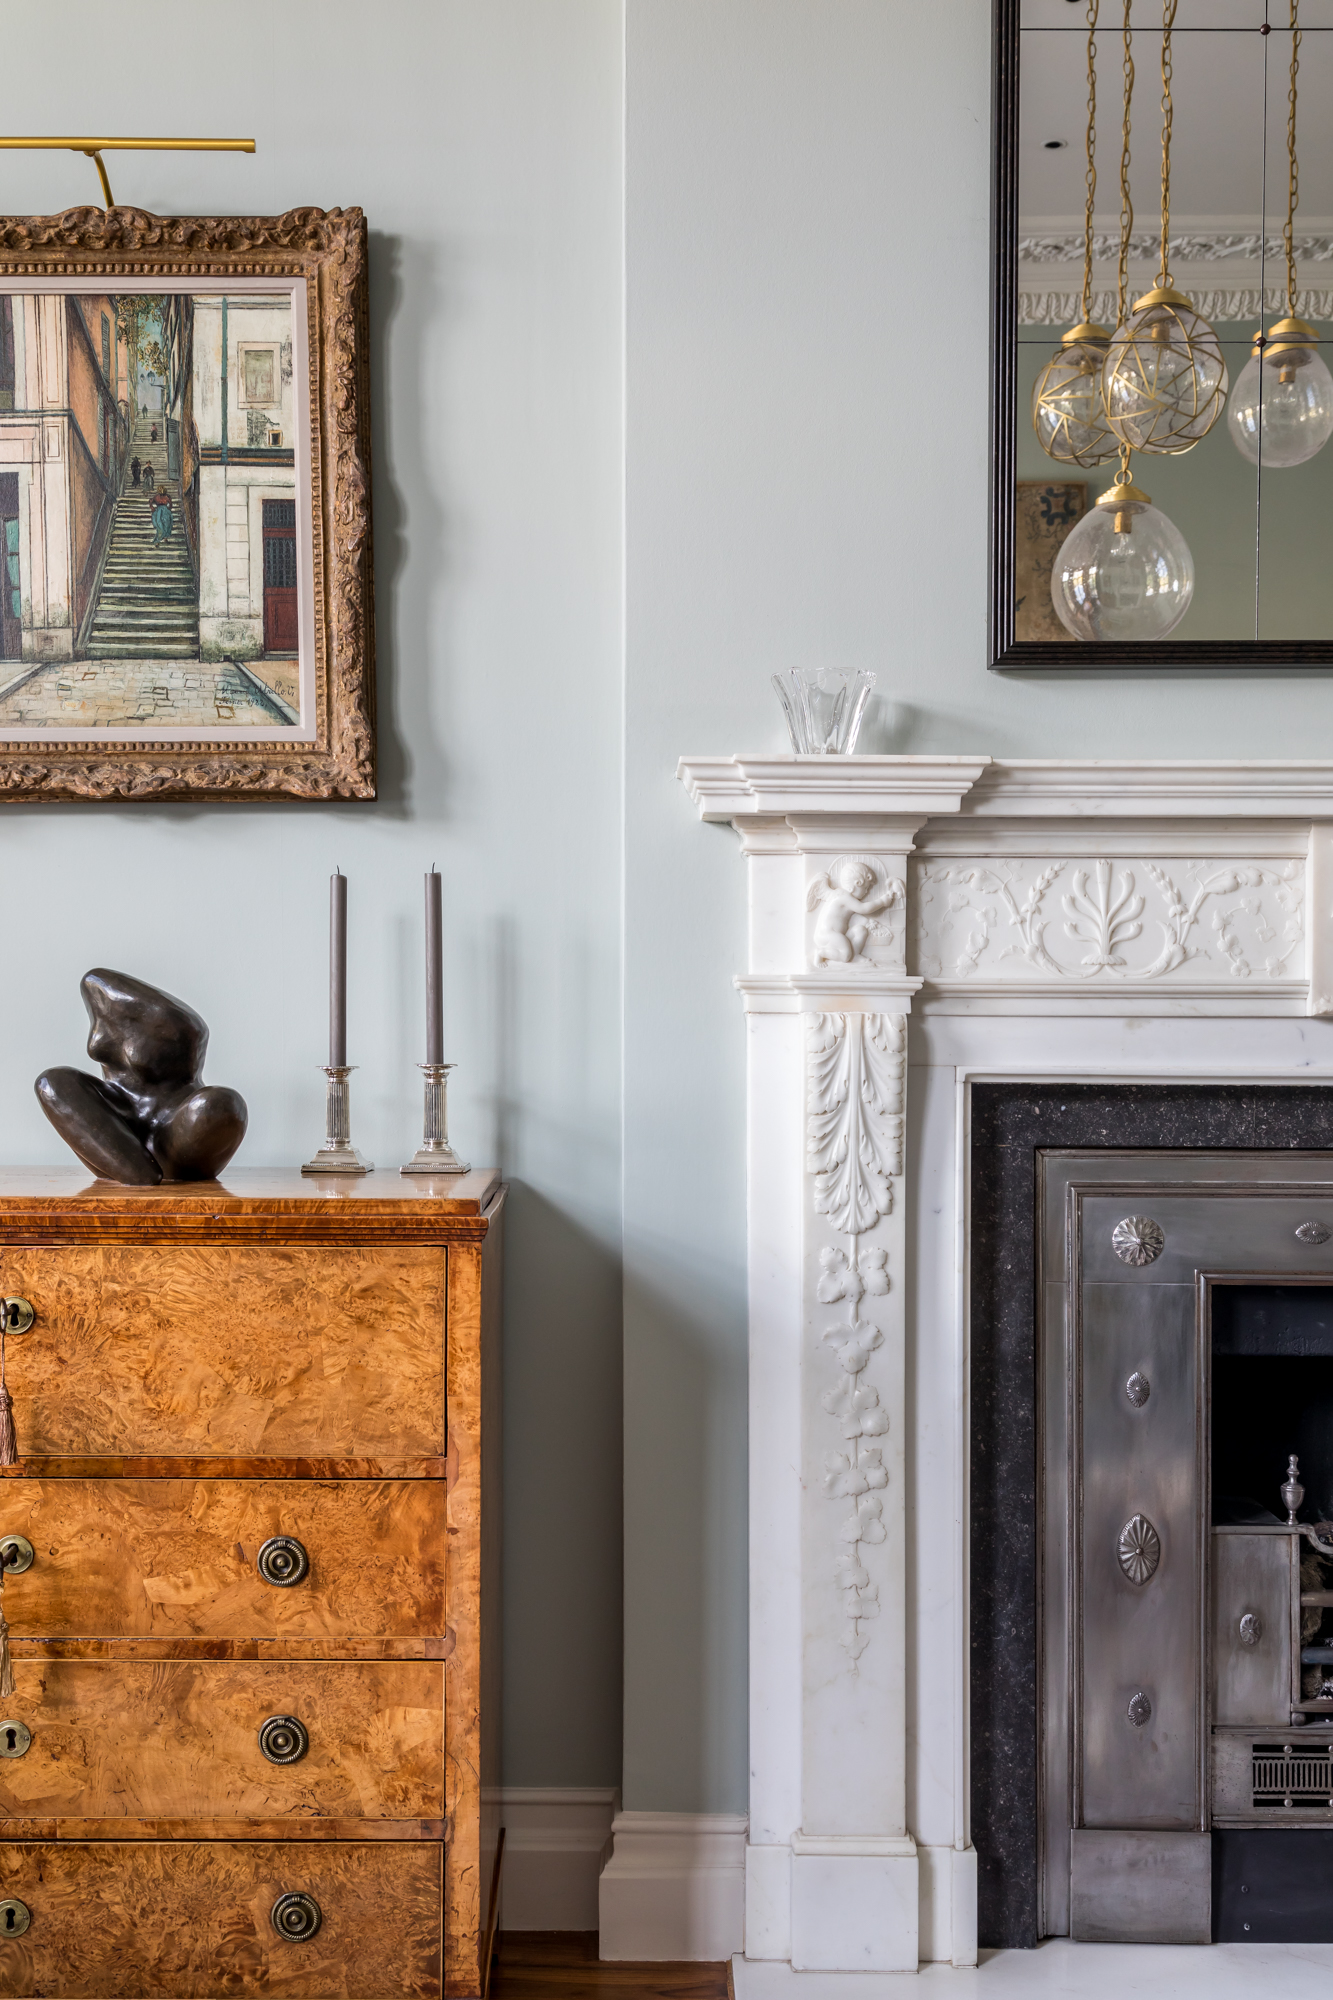 jonathan bond, interior photographer, white fireplace mantel & chest of drawers, holland park, london